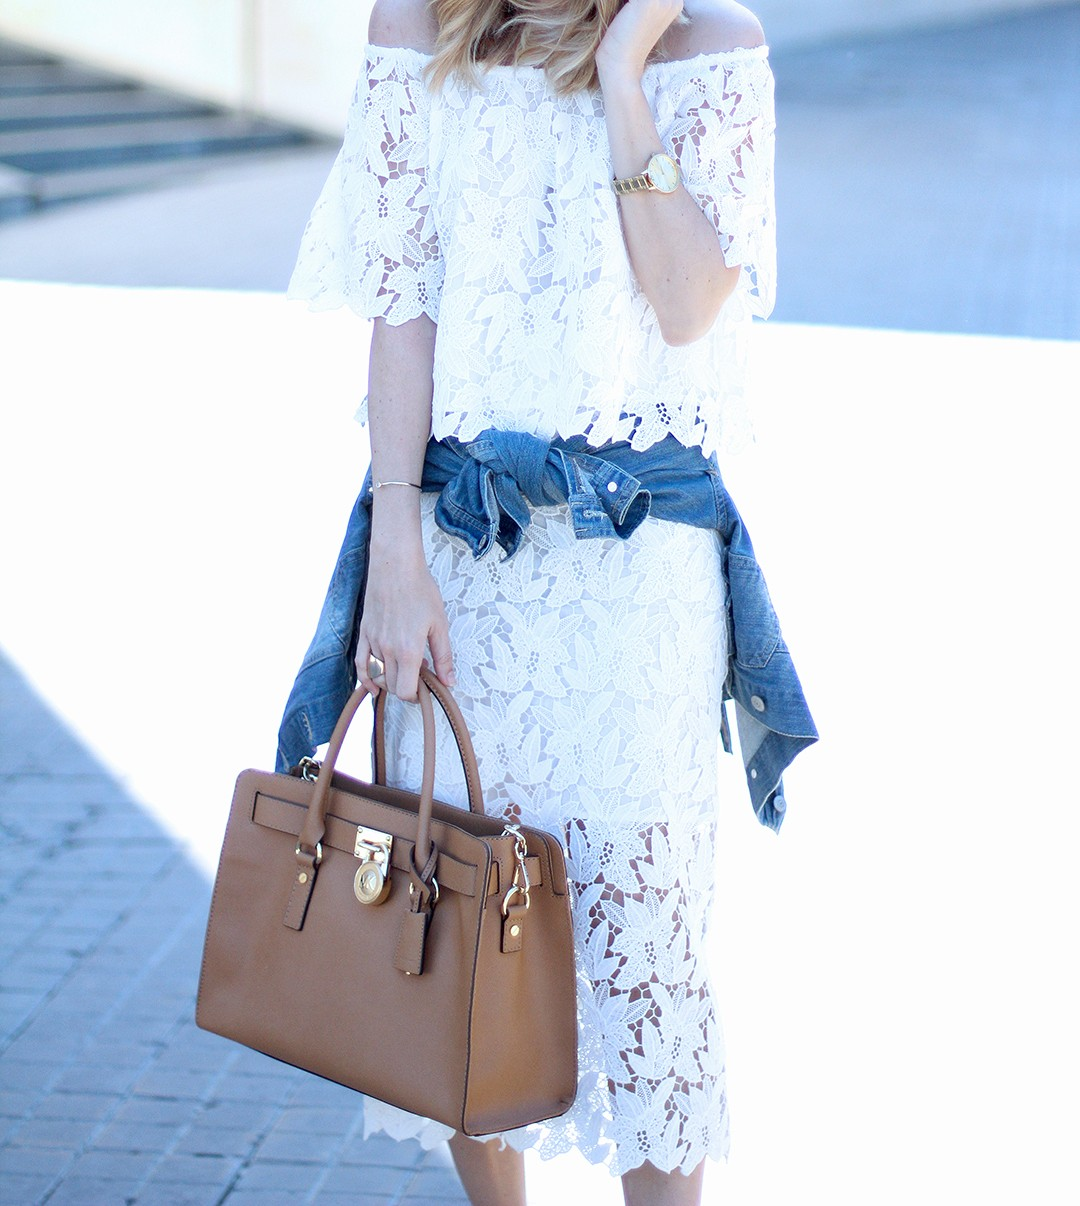 lace-street-style-2016-trends-fashion-blog-MESVOYAGESAPARI